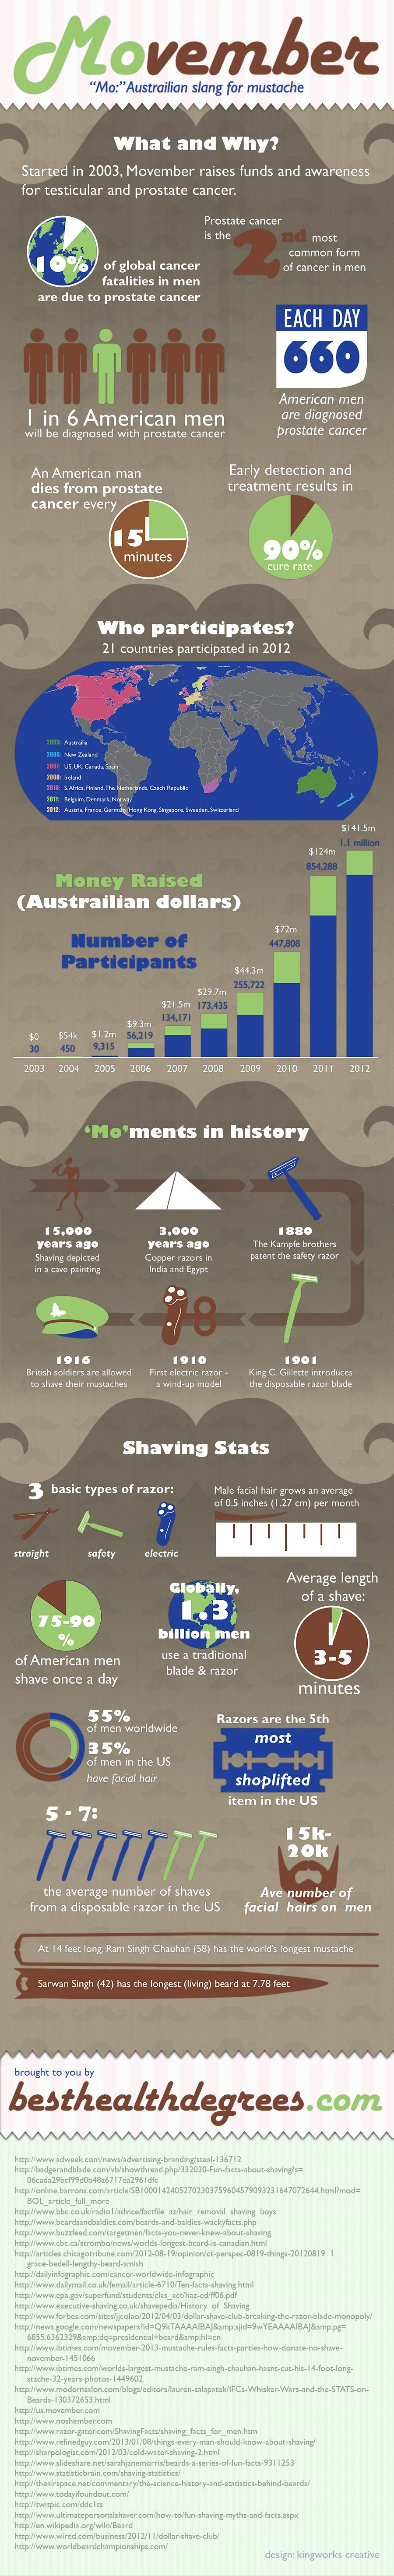 movember 900 - Movember: A Journey in Pictures